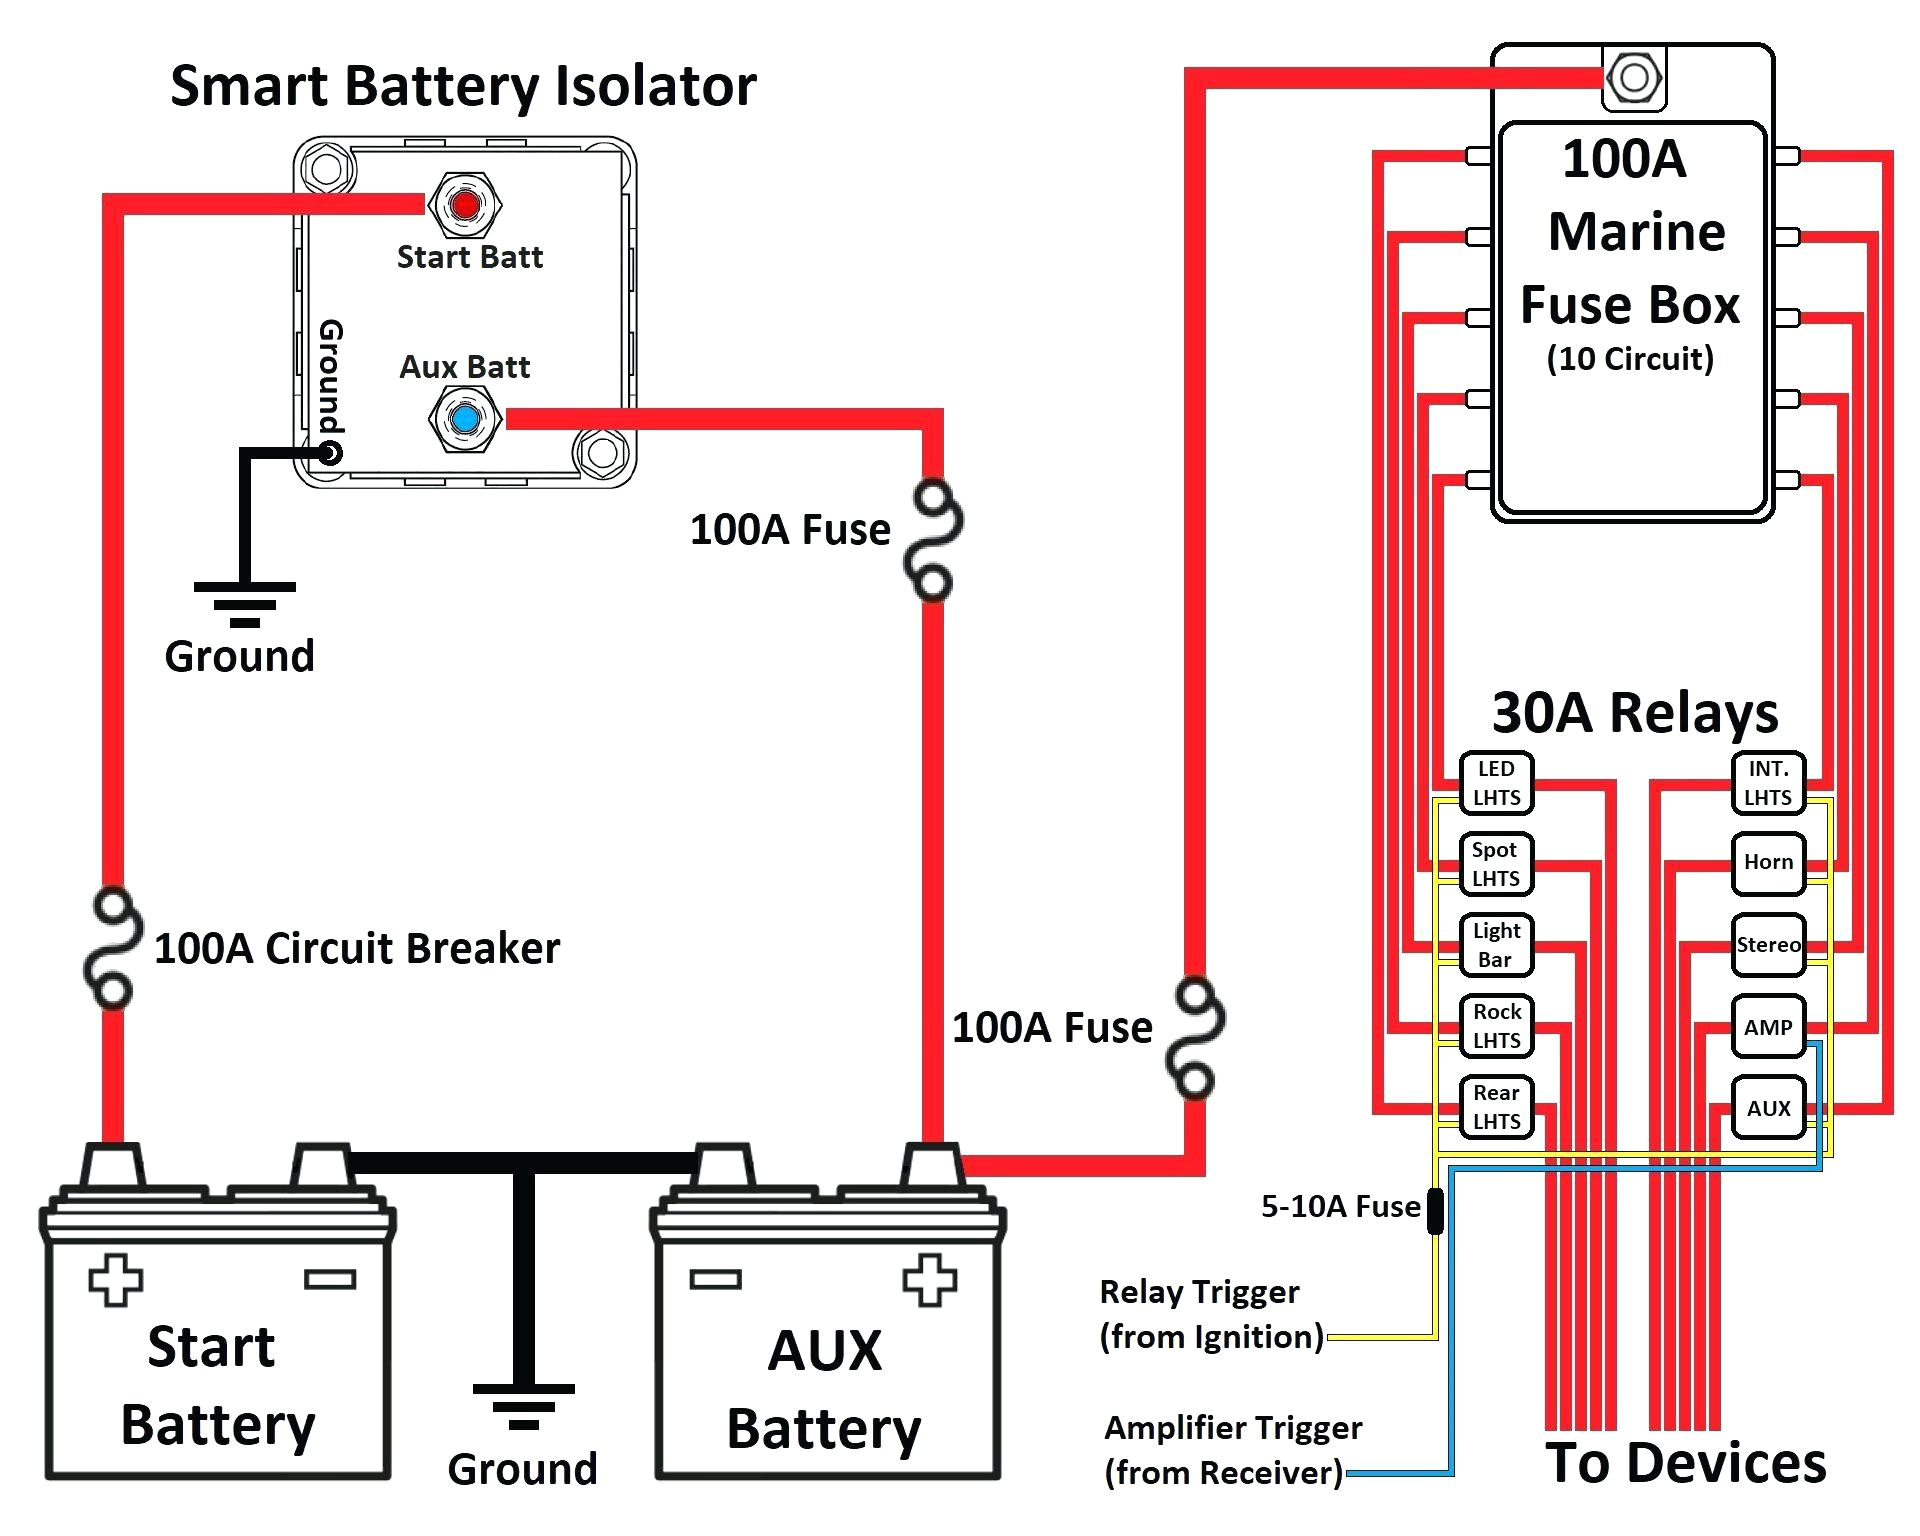 12v battery wiring diagram wiring diagram show club car 12v battery wiring diagram 12v battery wiring